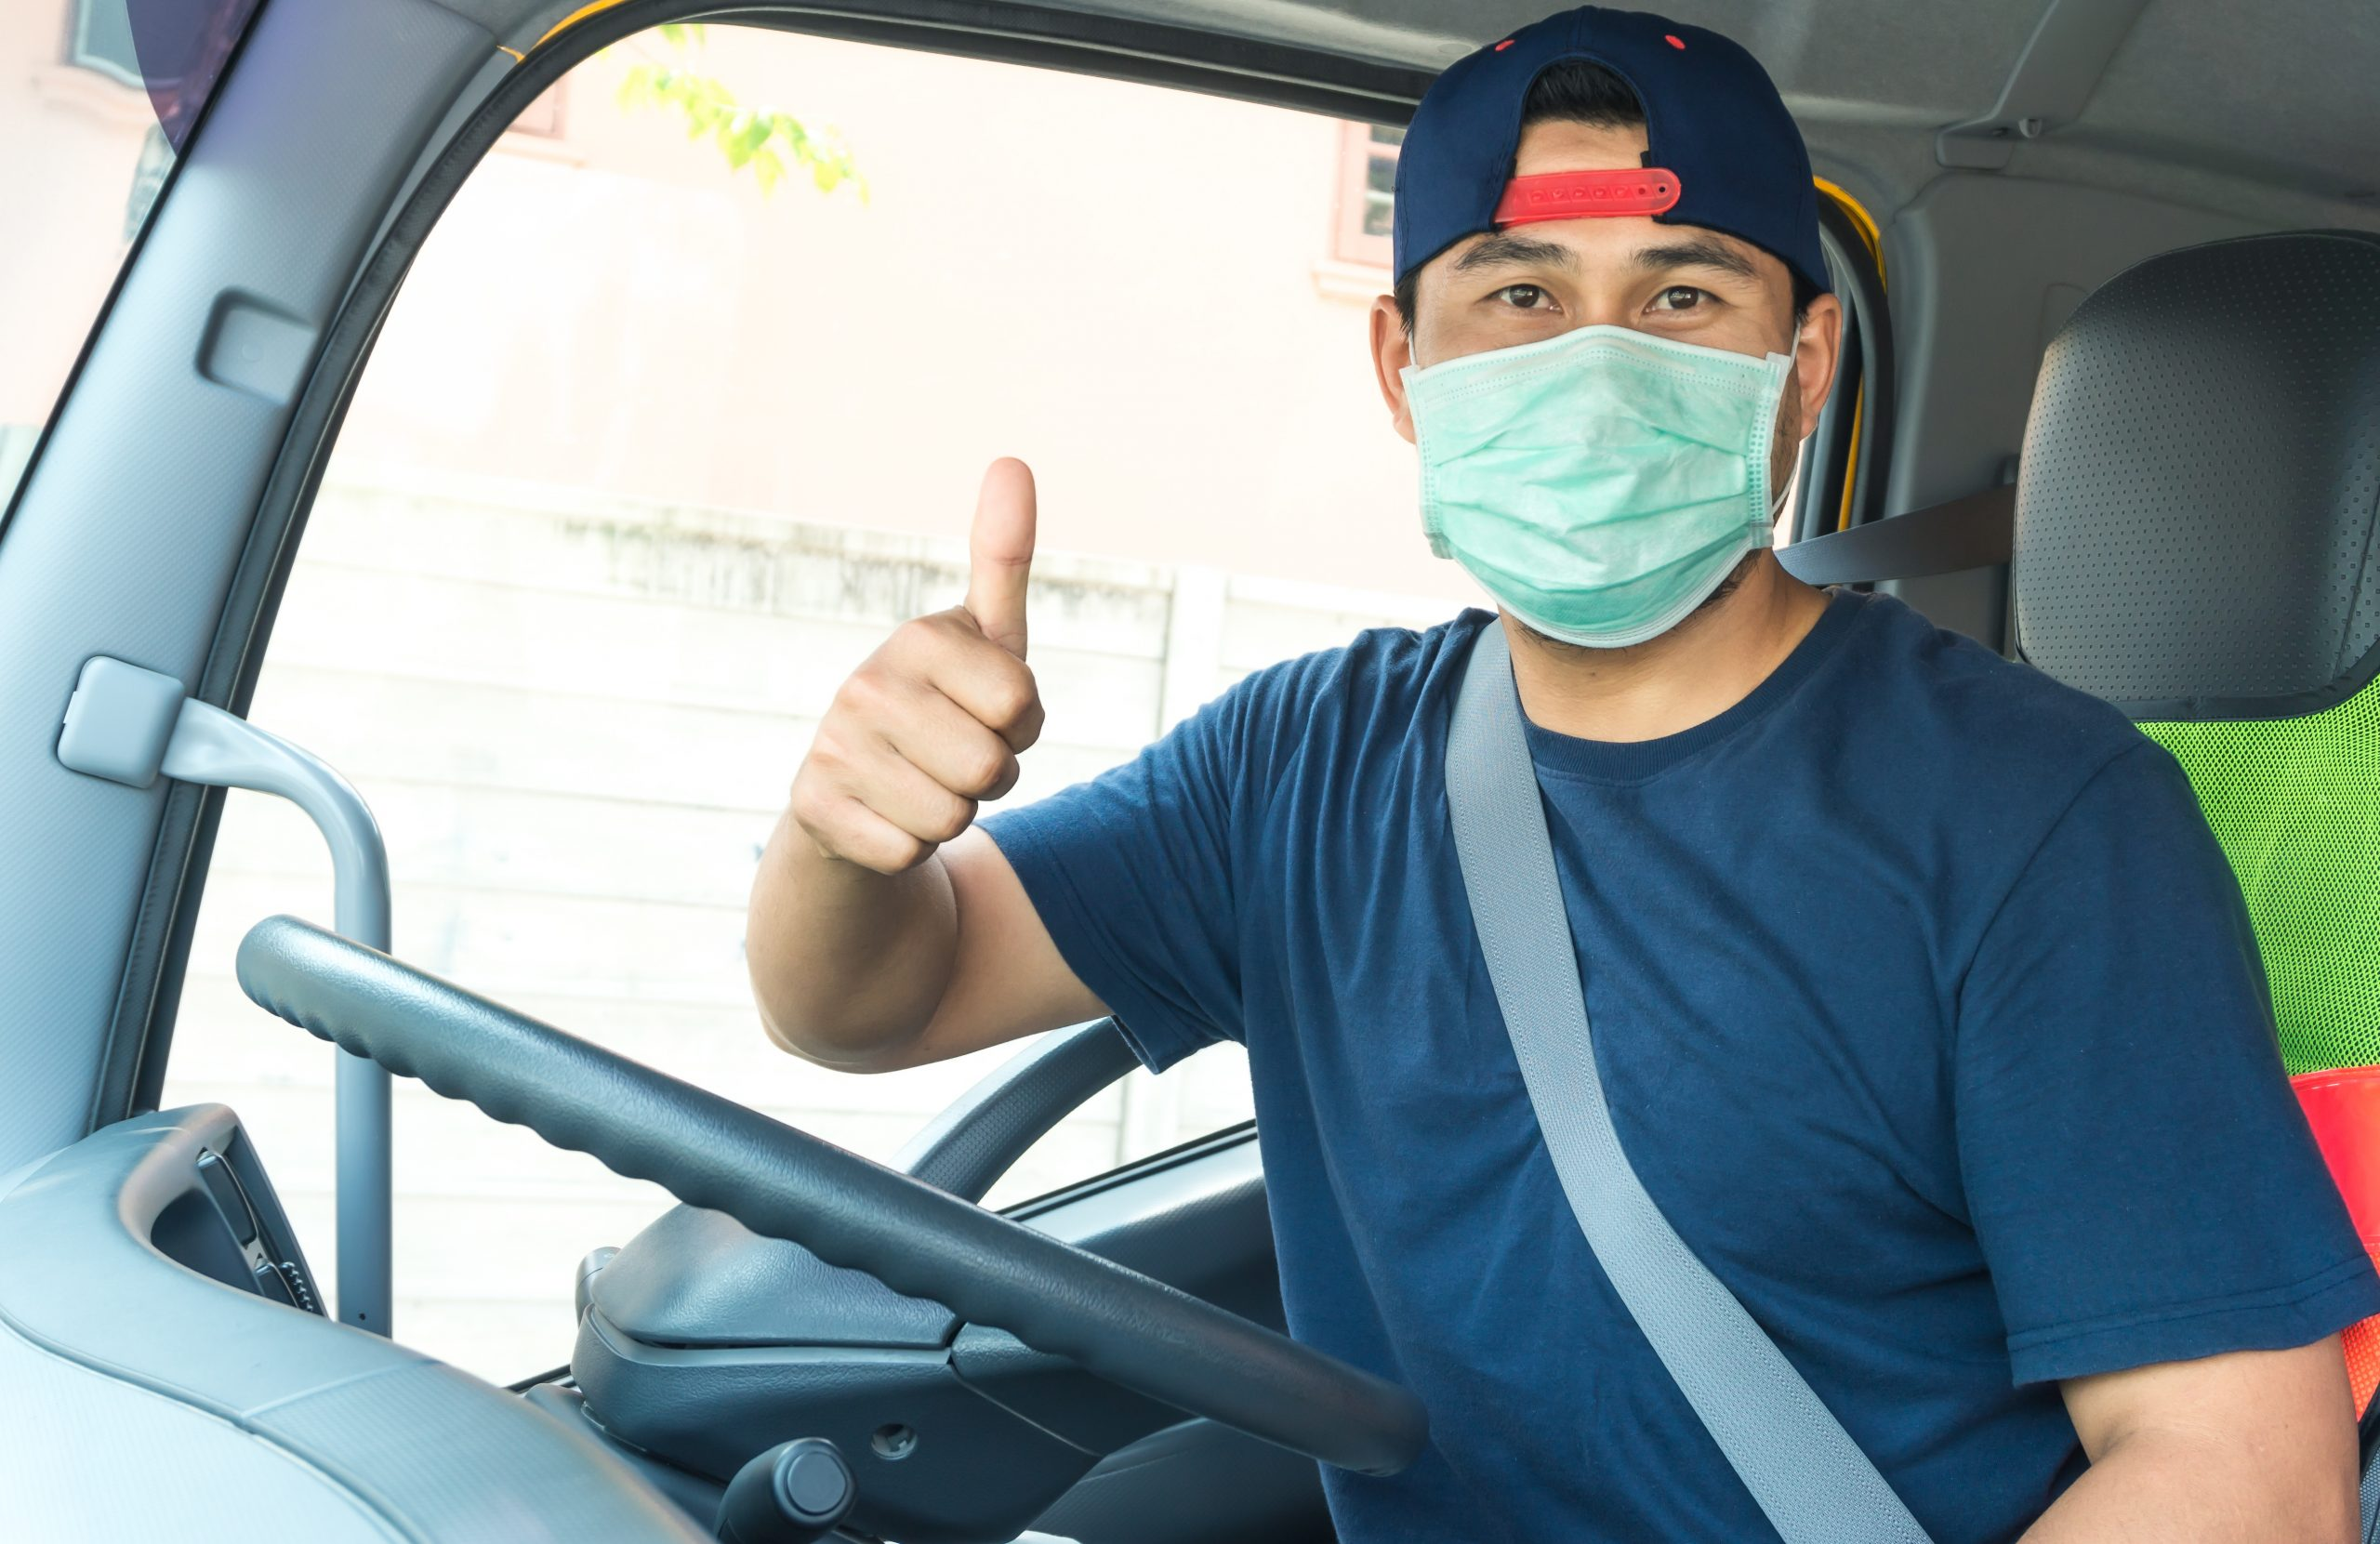 Truck driver with mask giving a thumbs up